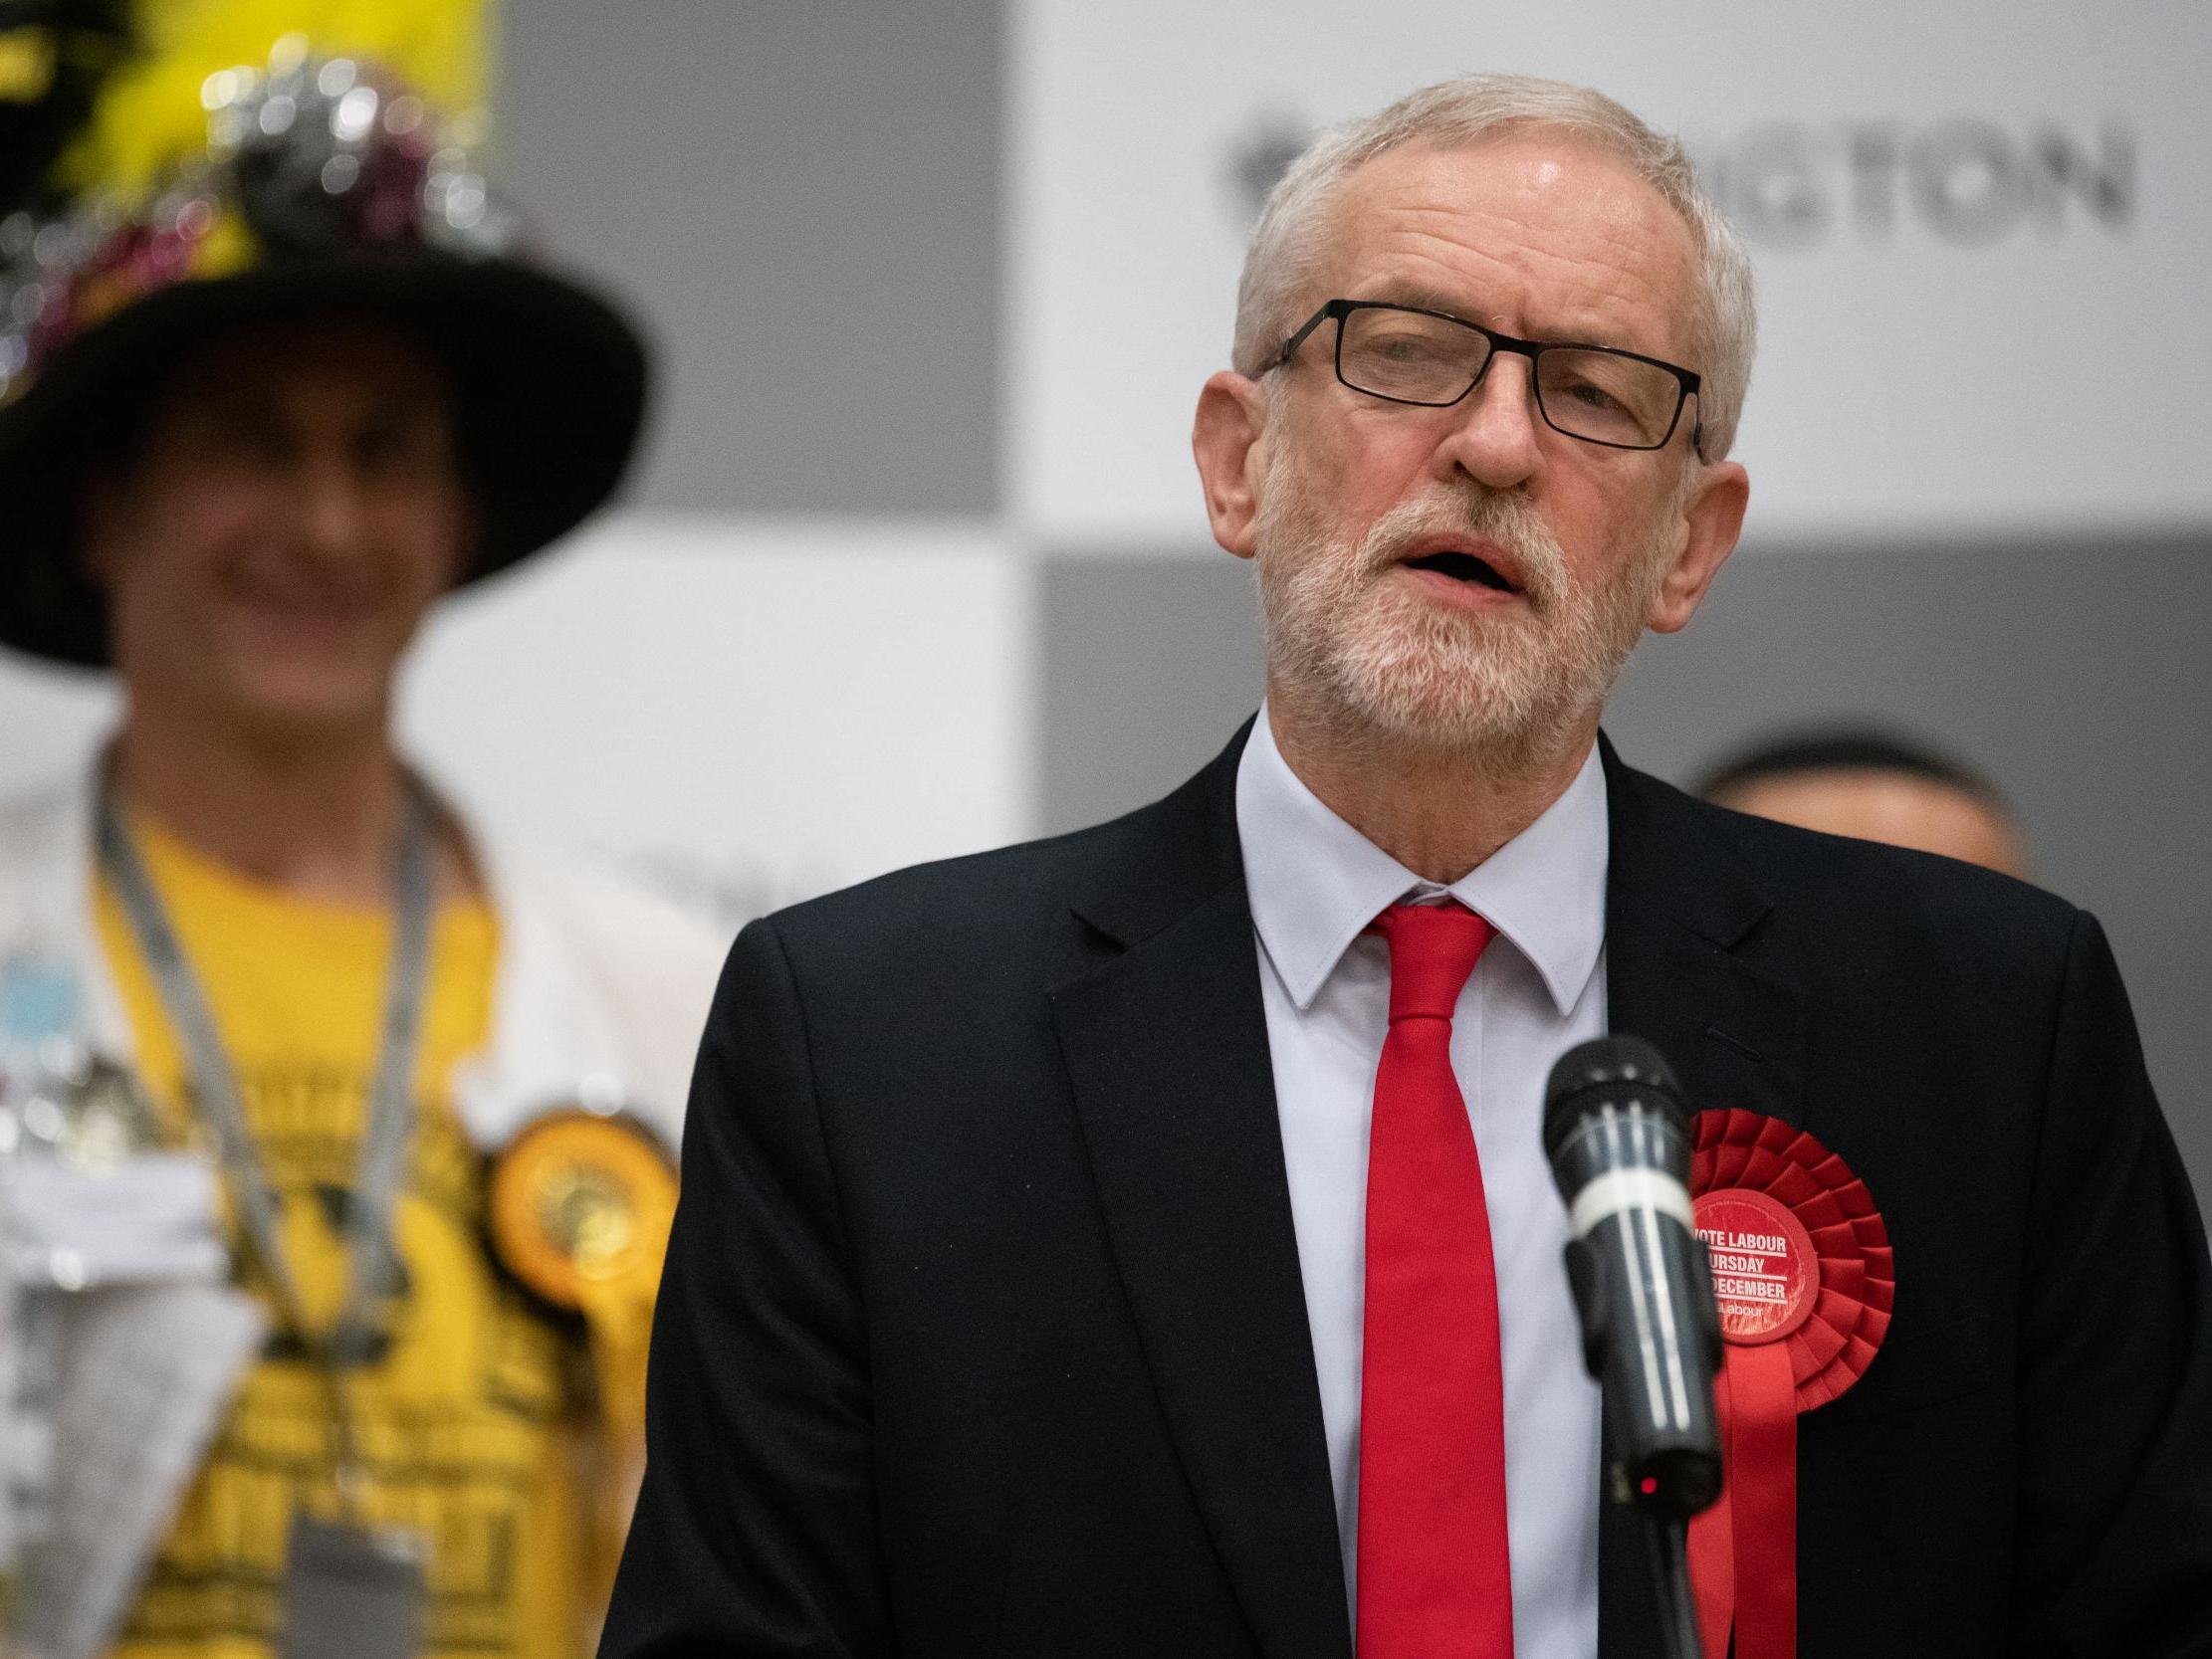 Election results – live: Corbyn condemned for newspaper non-apology as Johnson talks up a 'Whitehall revolution'